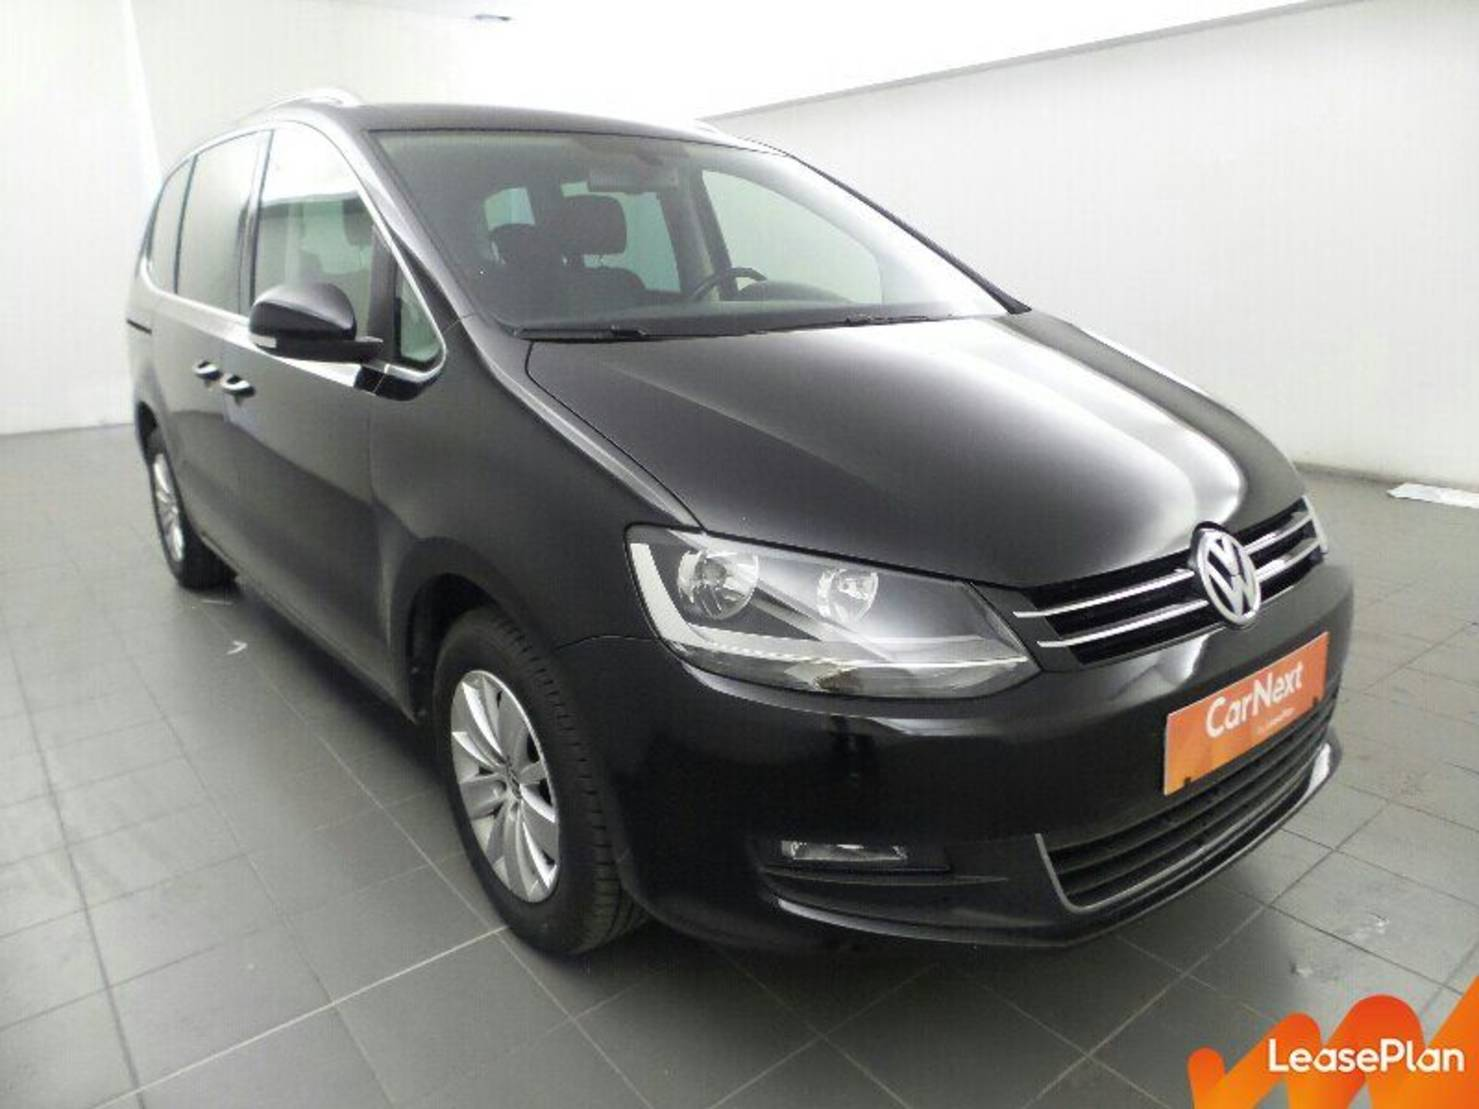 Volkswagen Sharan 2.0 TDI 140 FAP BlueMotion Technology, Confortline Business detail2